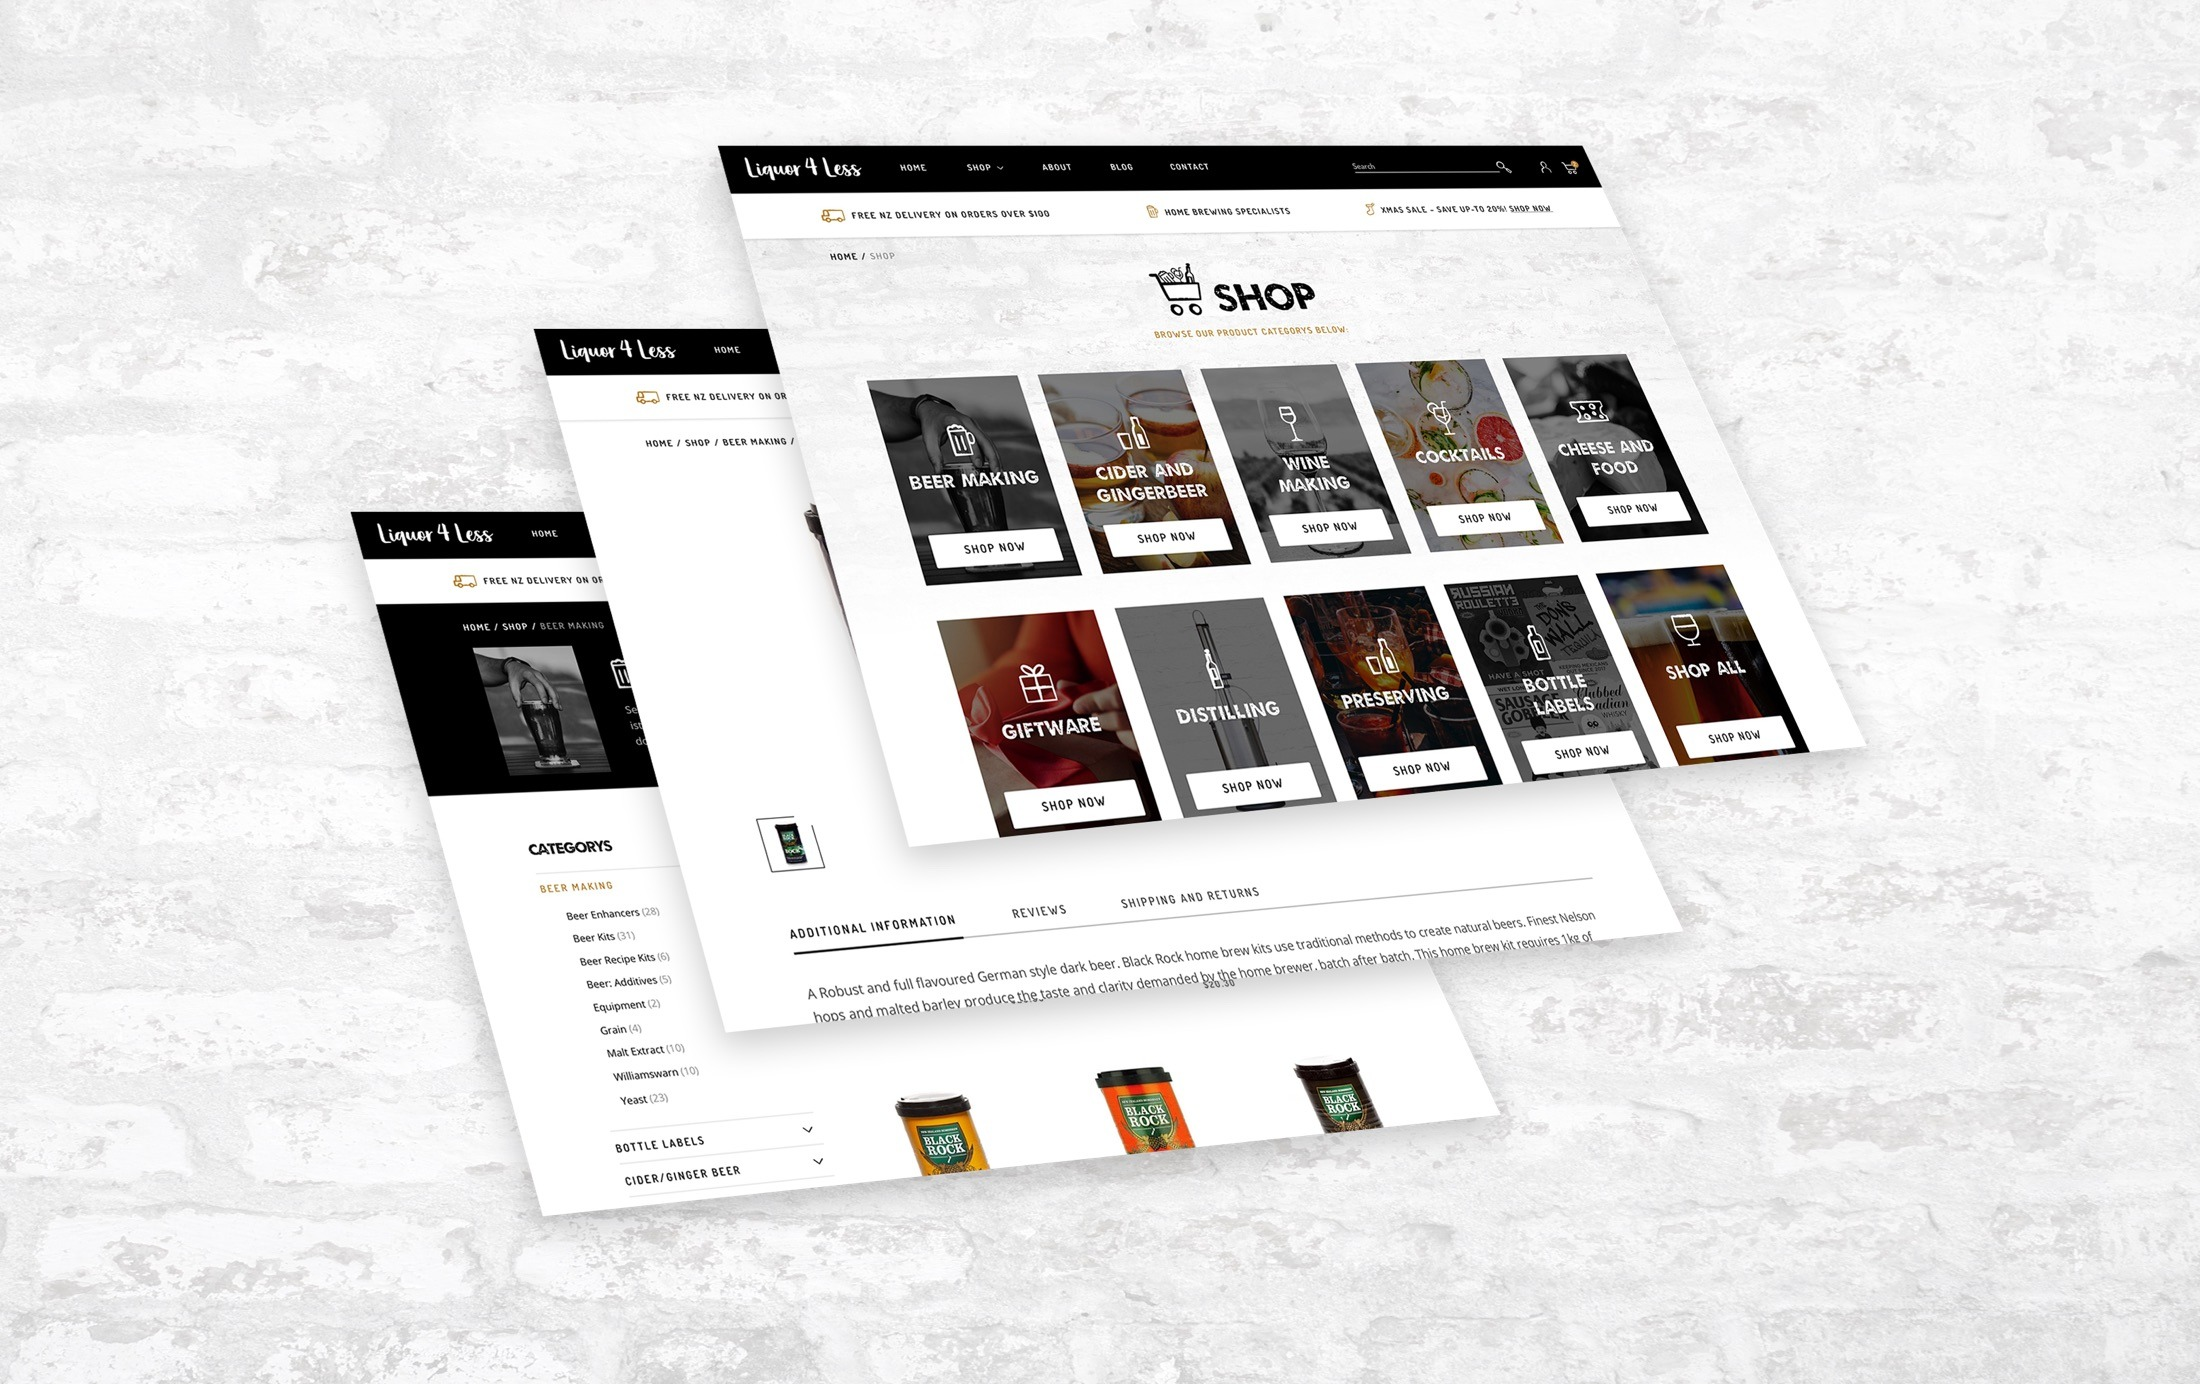 Website Development - Liquor 4 Less